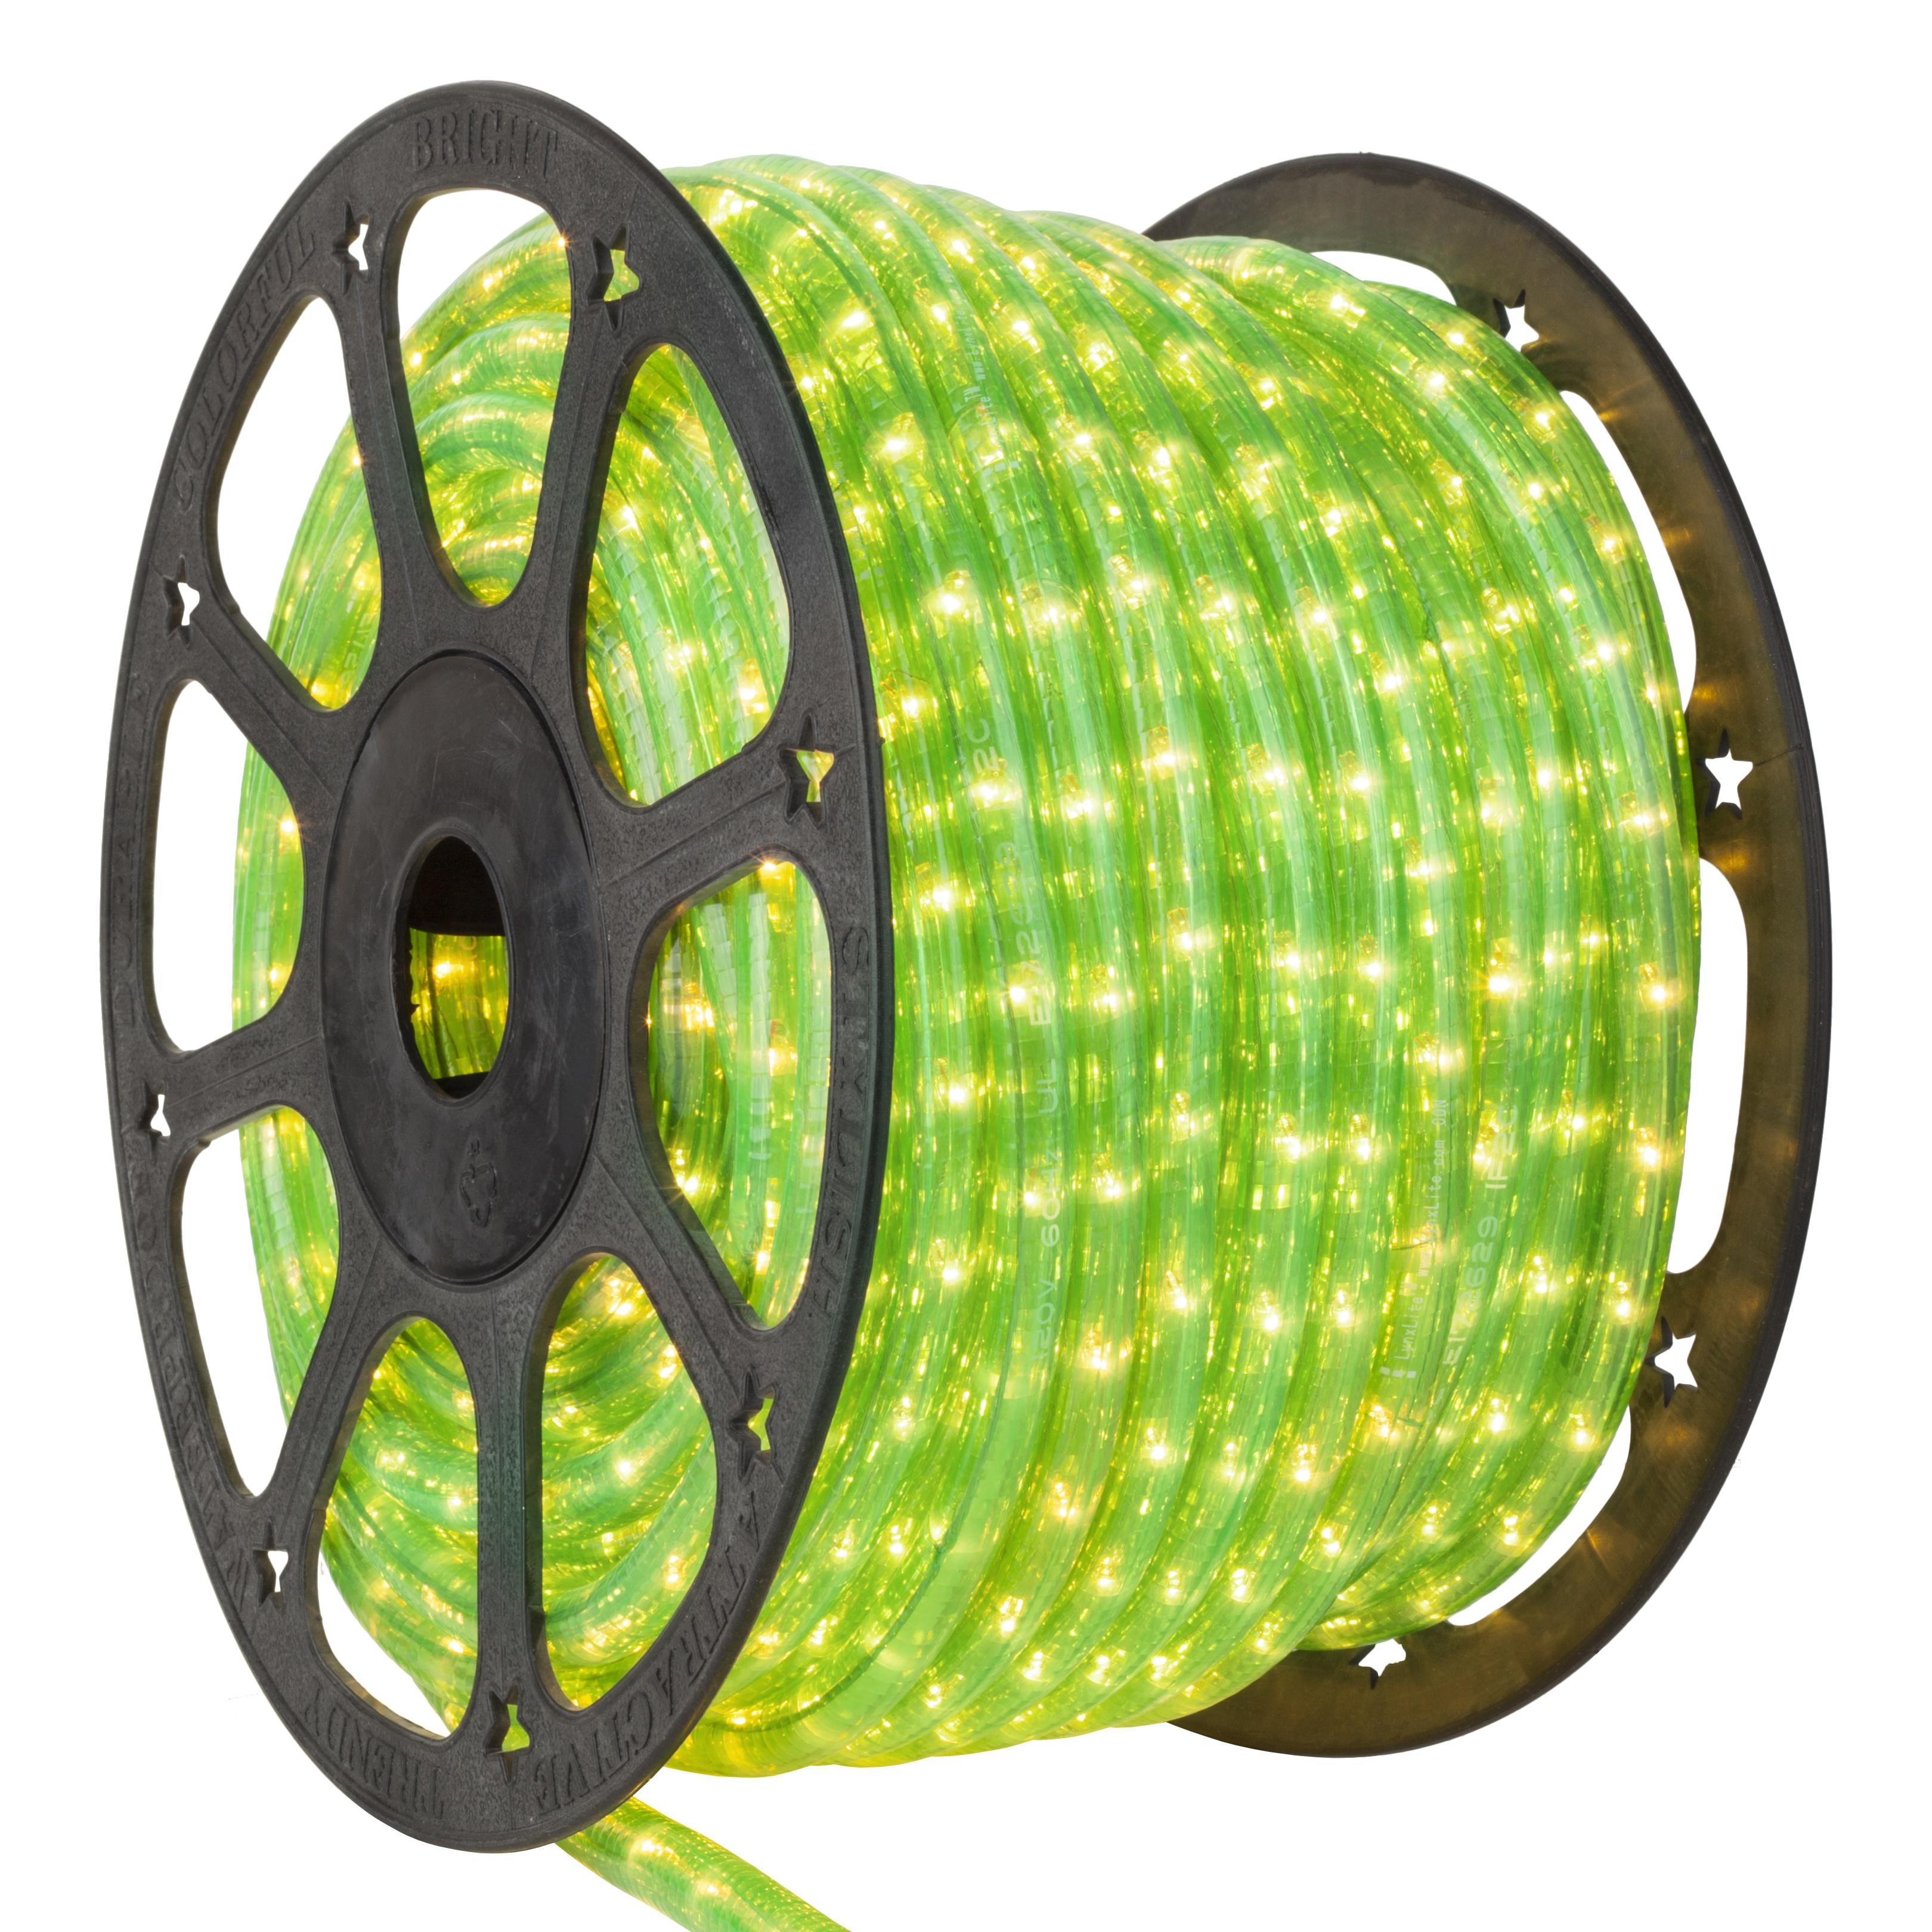 Rope light 150 fluorescent green rope light commercial spool 120 rope light 150 fluorescent green rope light commercial spool 120 volt mozeypictures Image collections